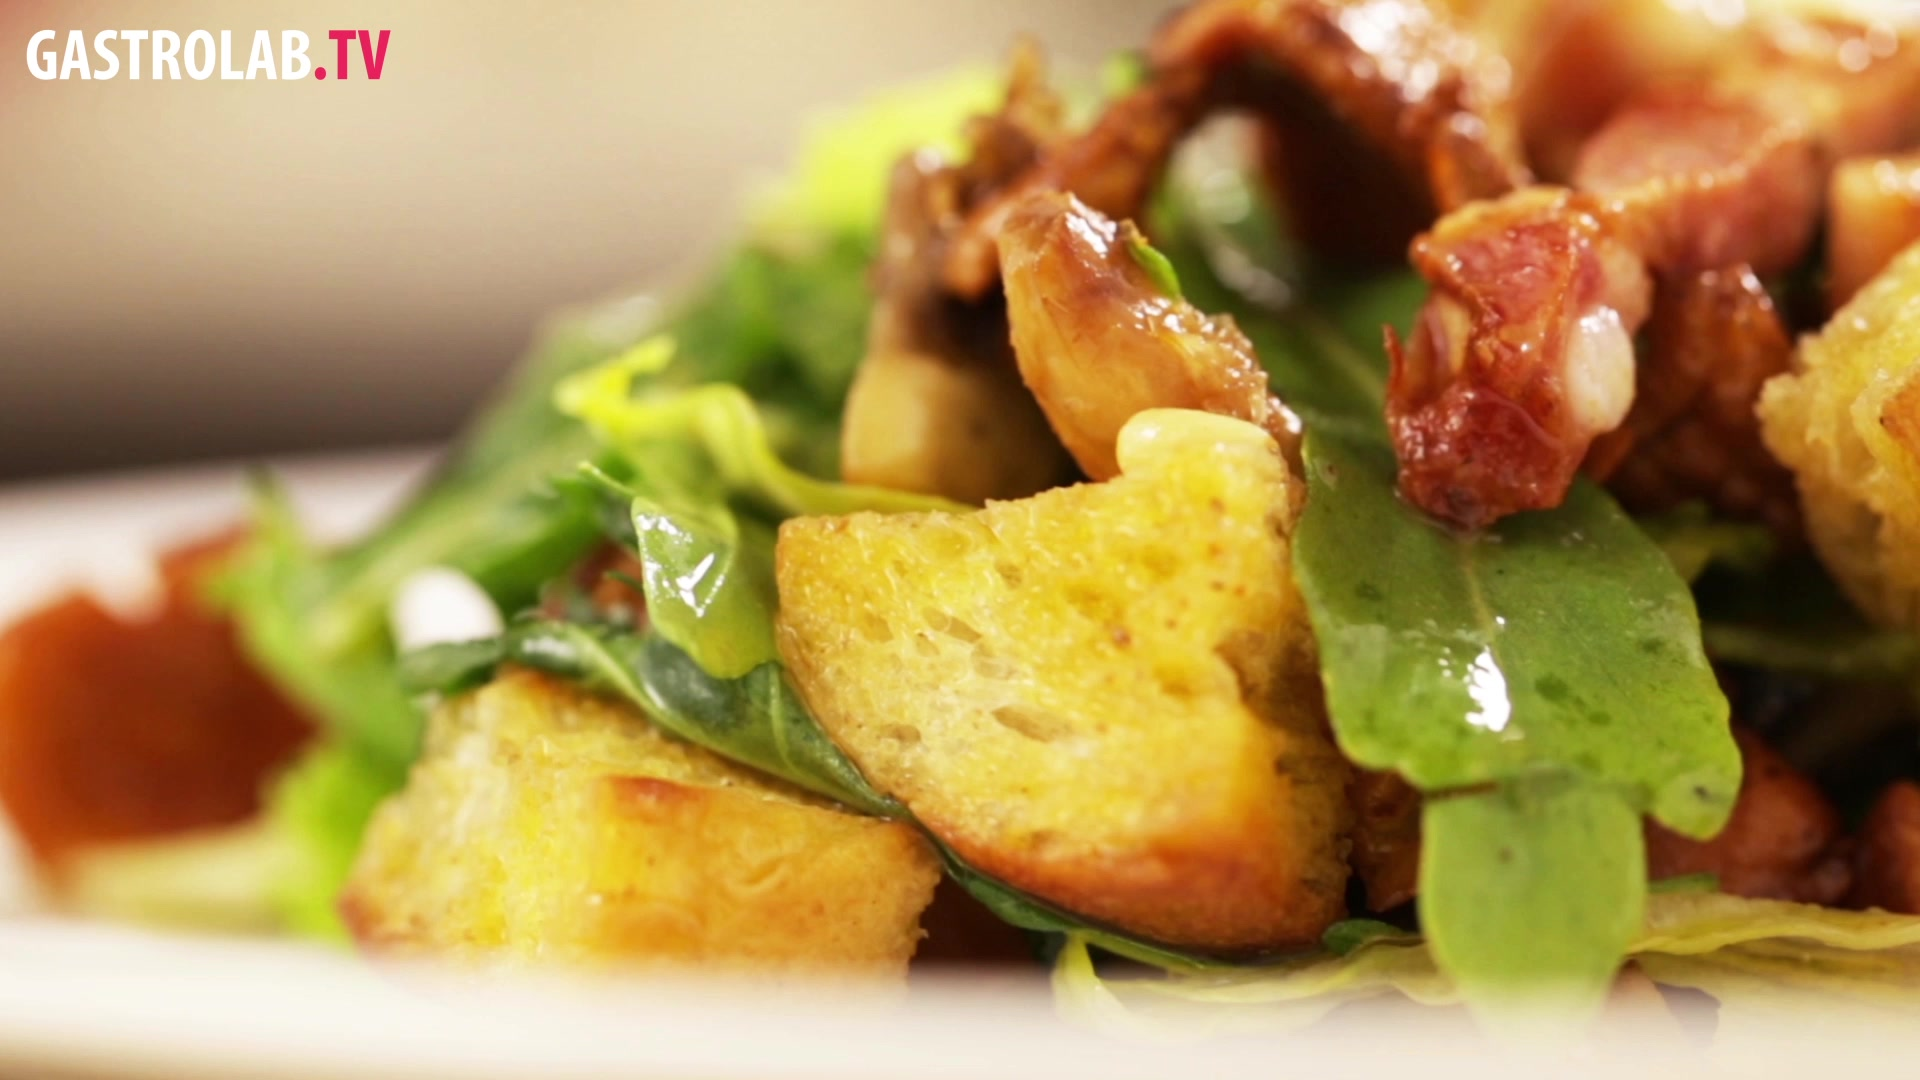 How to Make a Christmas Salad with Pancetta, Chanterelles and Pine Nuts